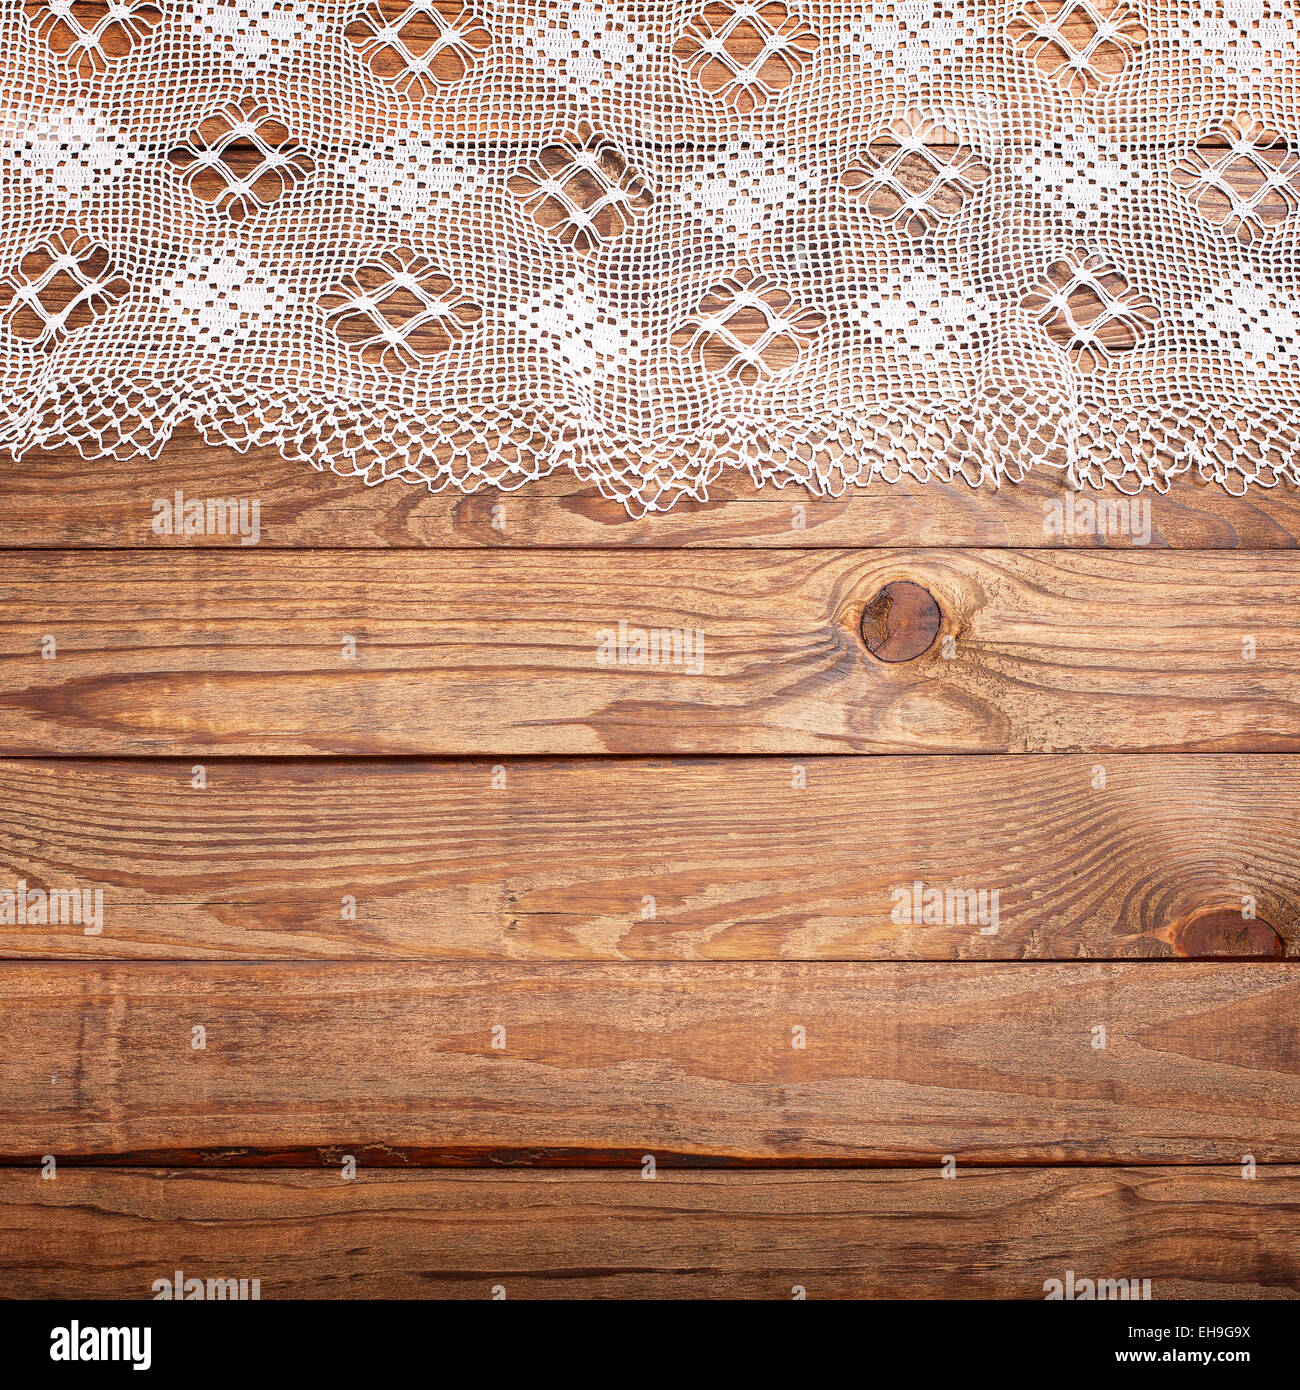 White wooden table texture - Stock Photo Wood Texture Wooden Table With White Lace Tablecloth Top View